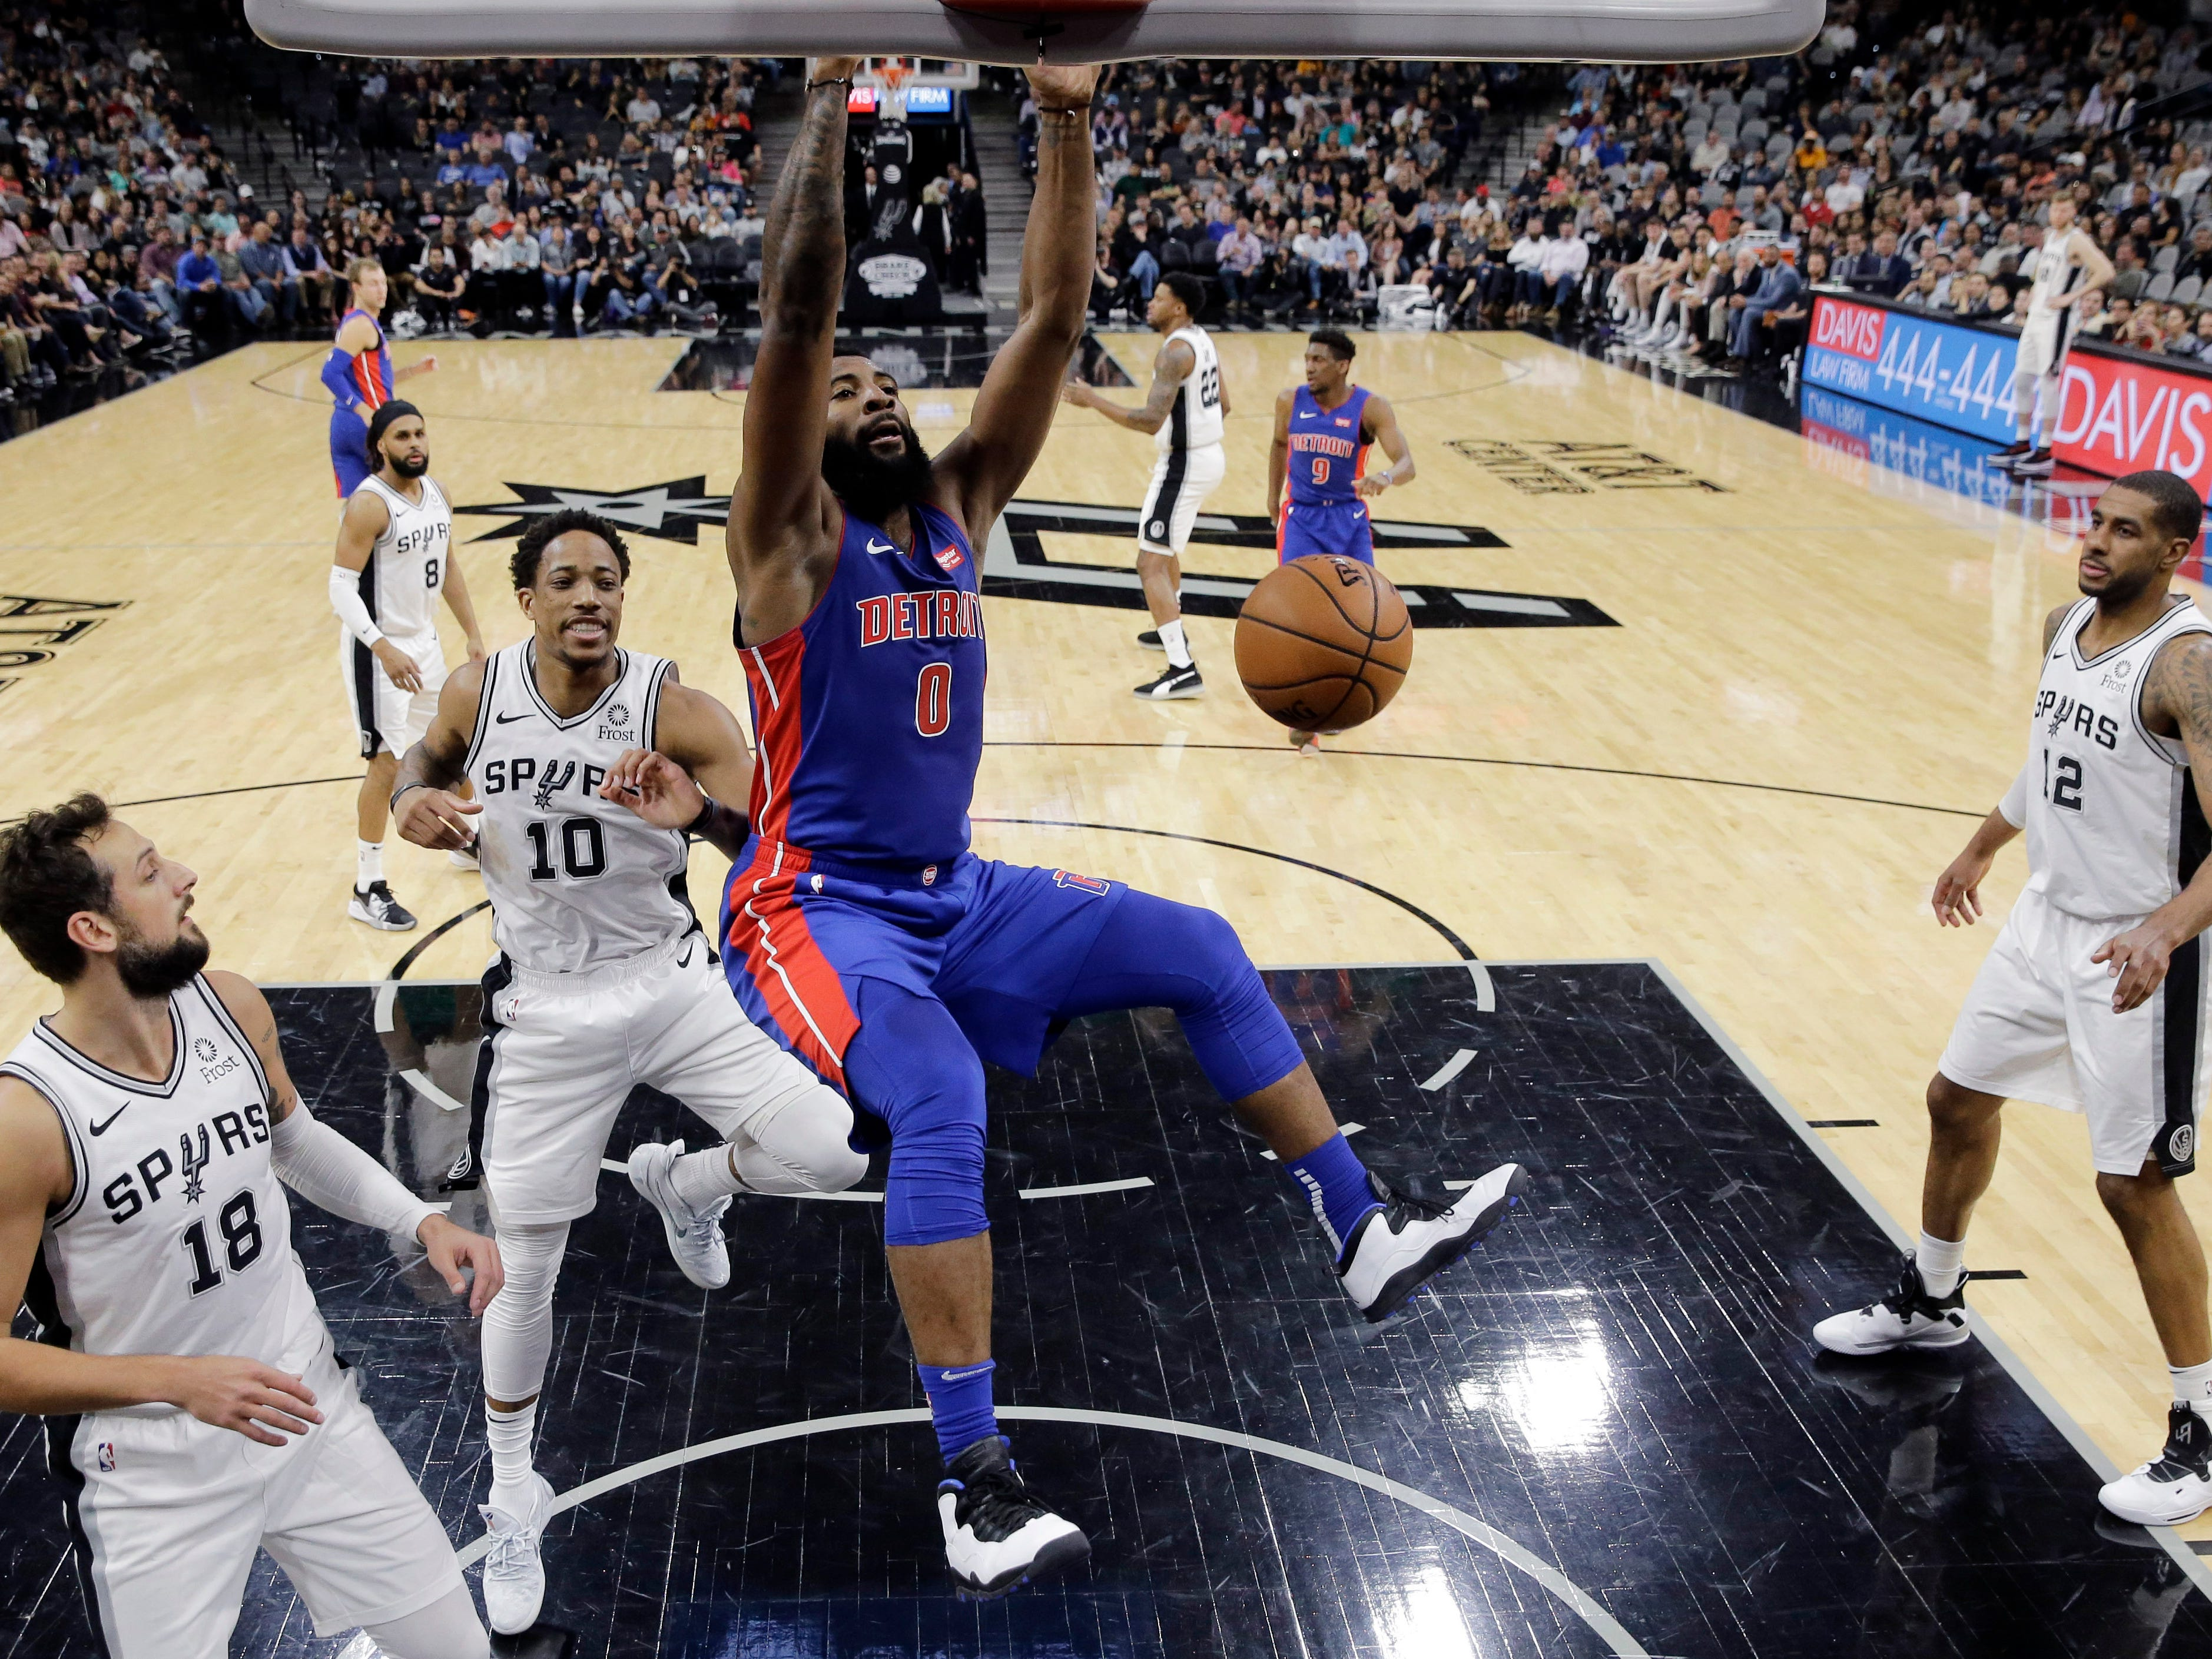 Detroit Pistons center Andre Drummond scores past San Antonio Spurs guard DeMar DeRozan (10) during the first half in San Antonio, Wednesday, Feb. 27, 2019.